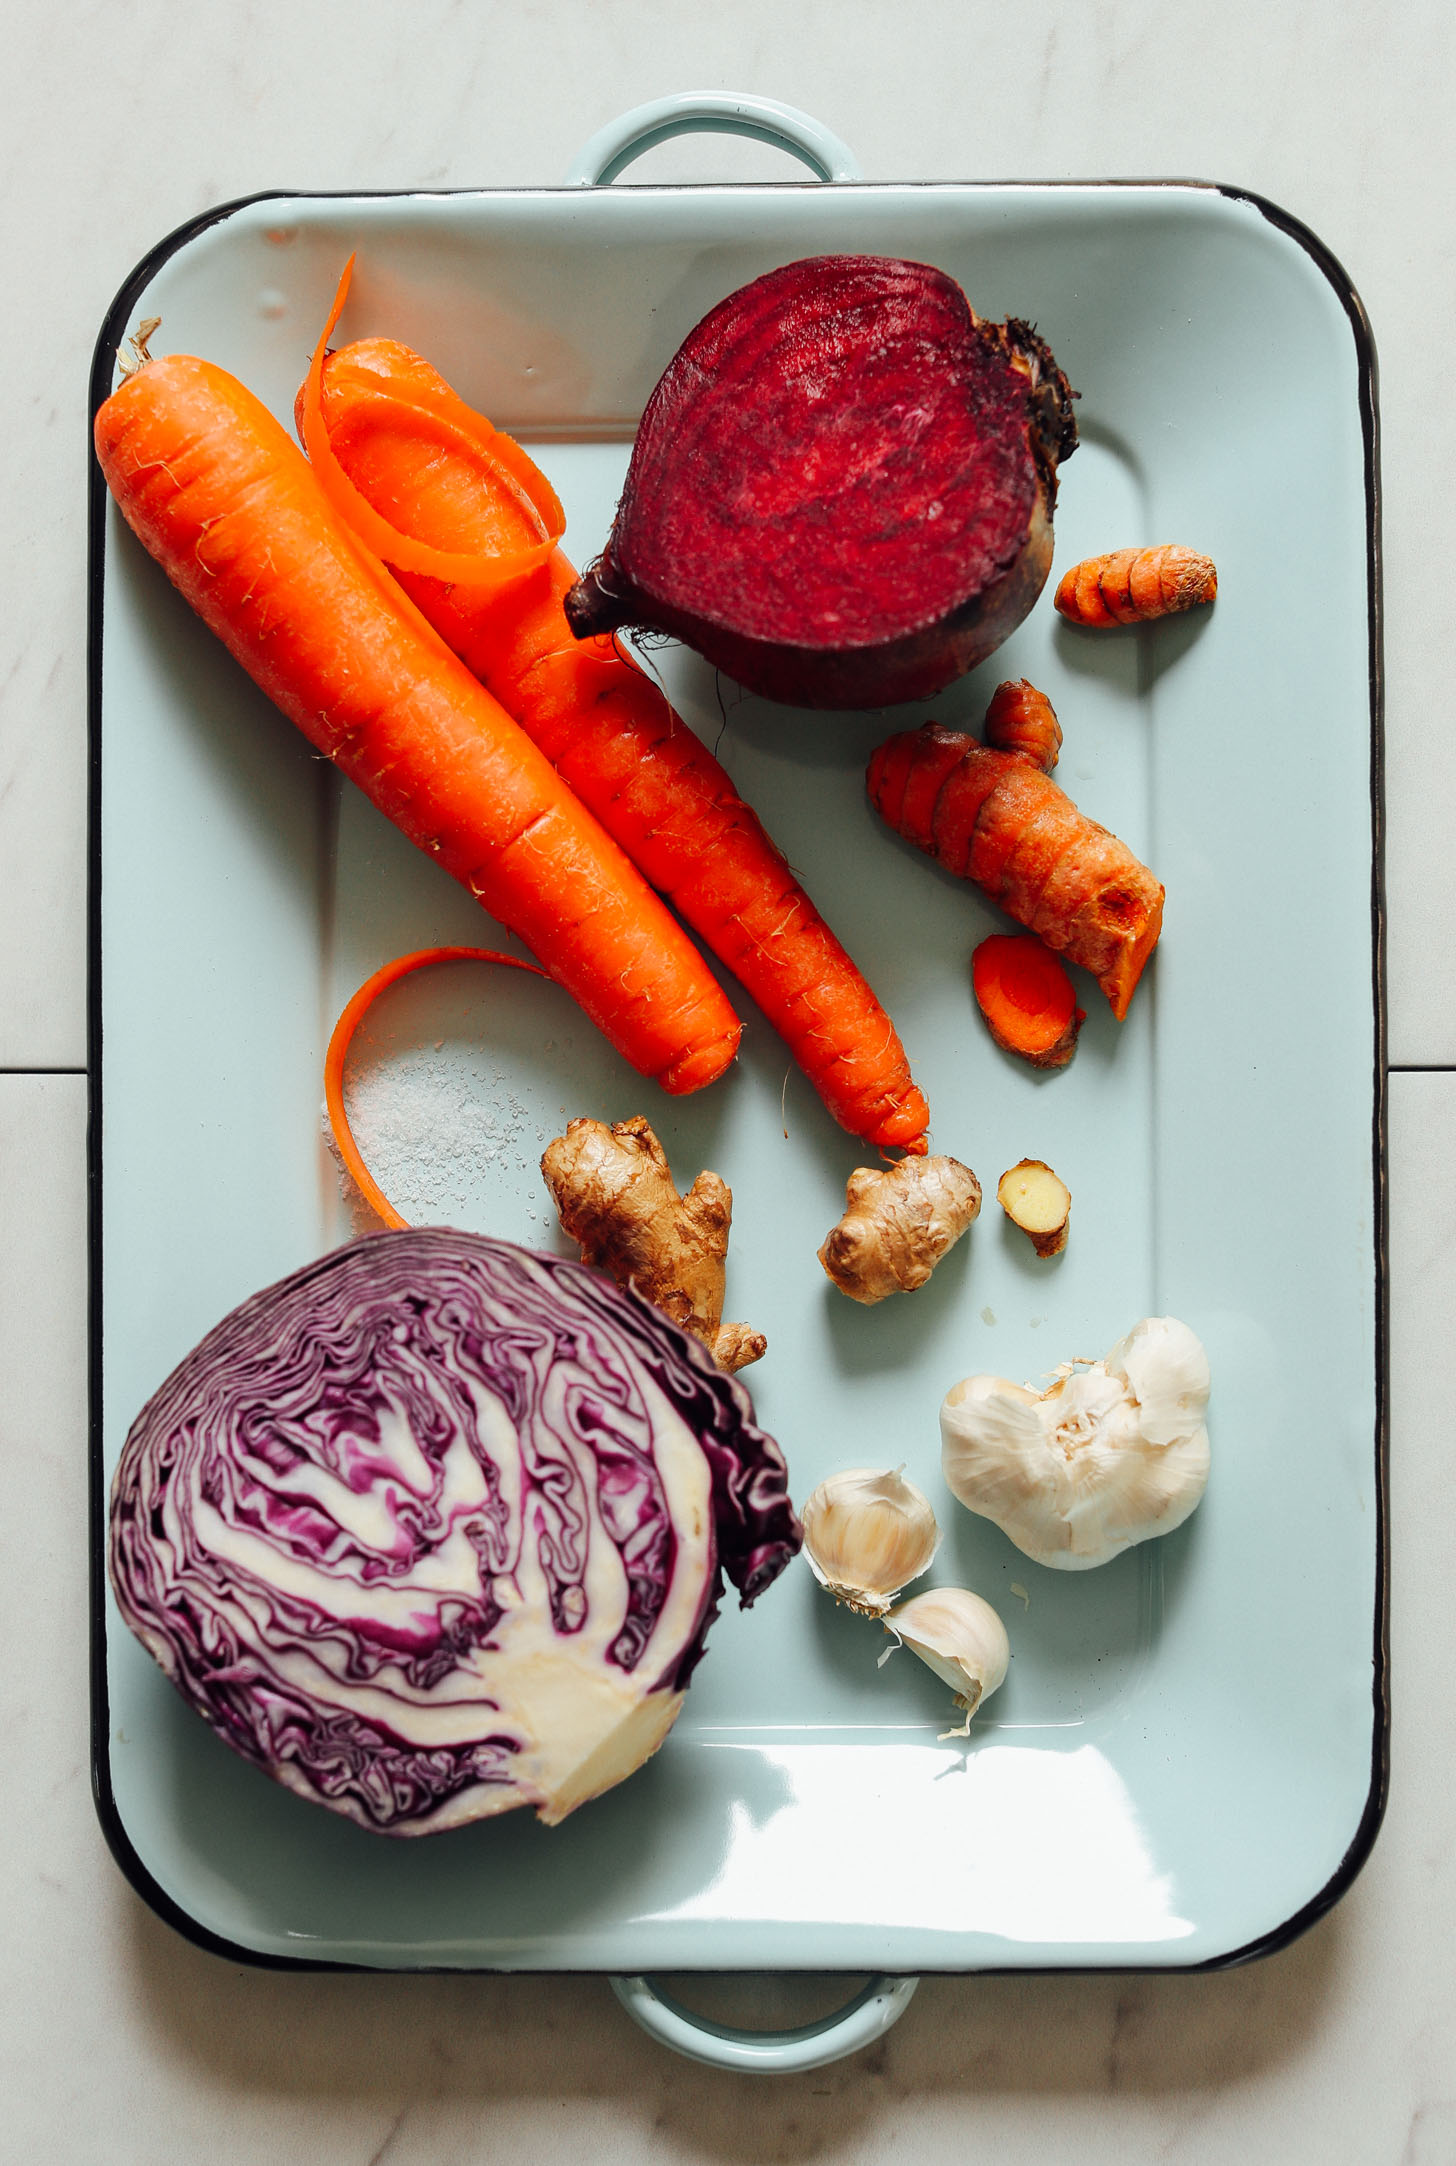 Tray of red cabbage, garlic, ginger, turmeric, carrots, and beets